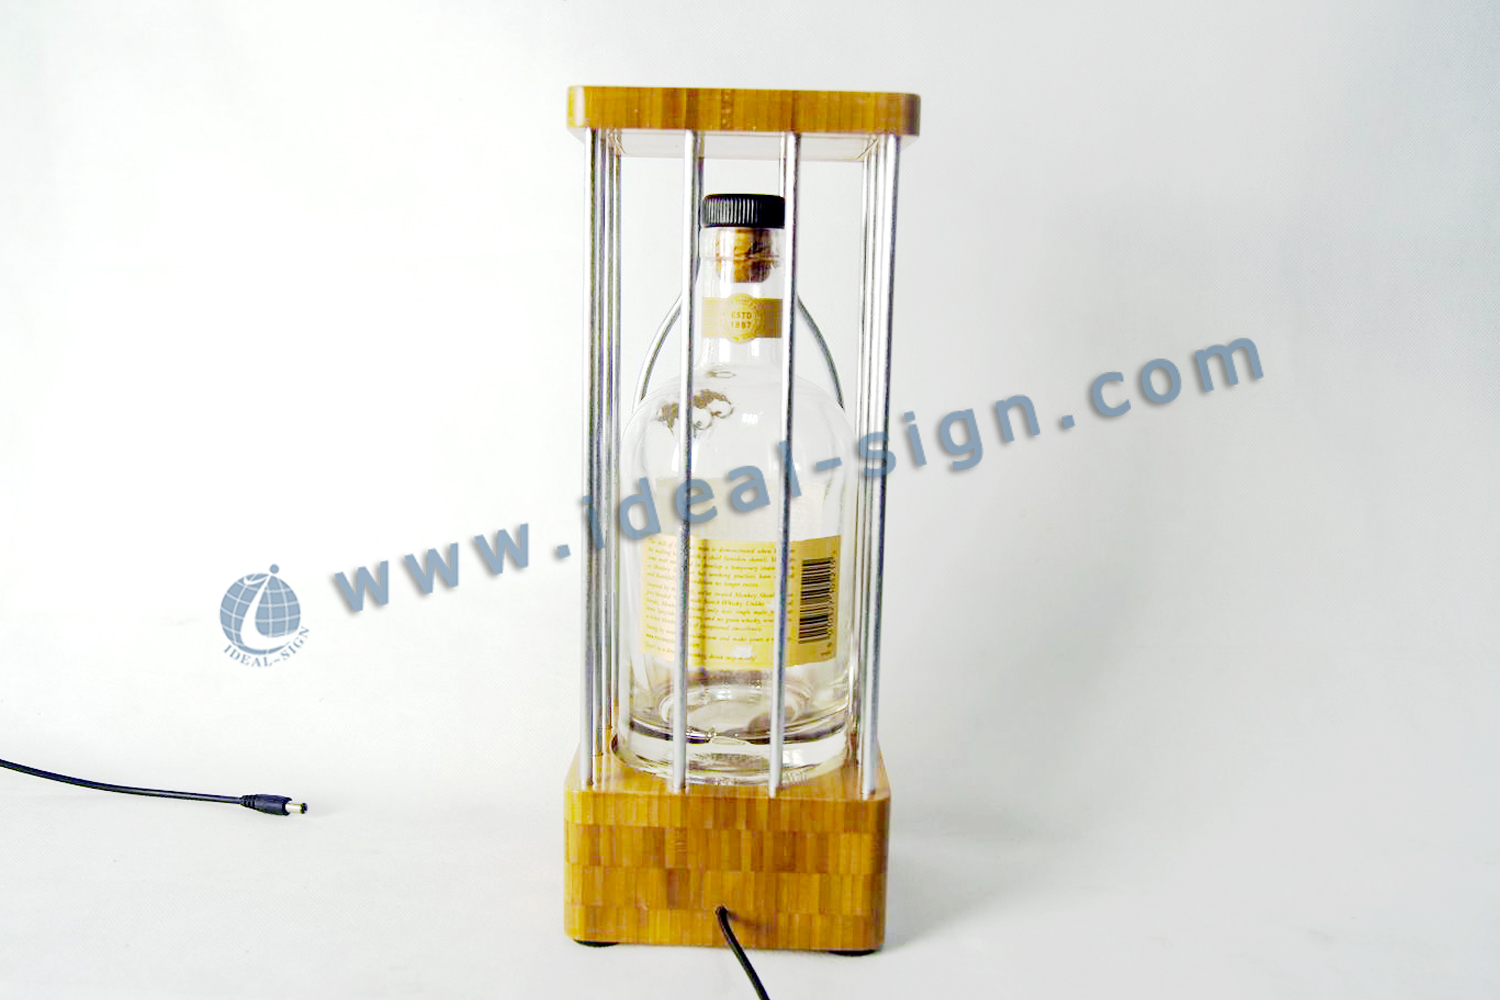 Monkey Shoulder's Bamboo LED Liquor Bottle Display